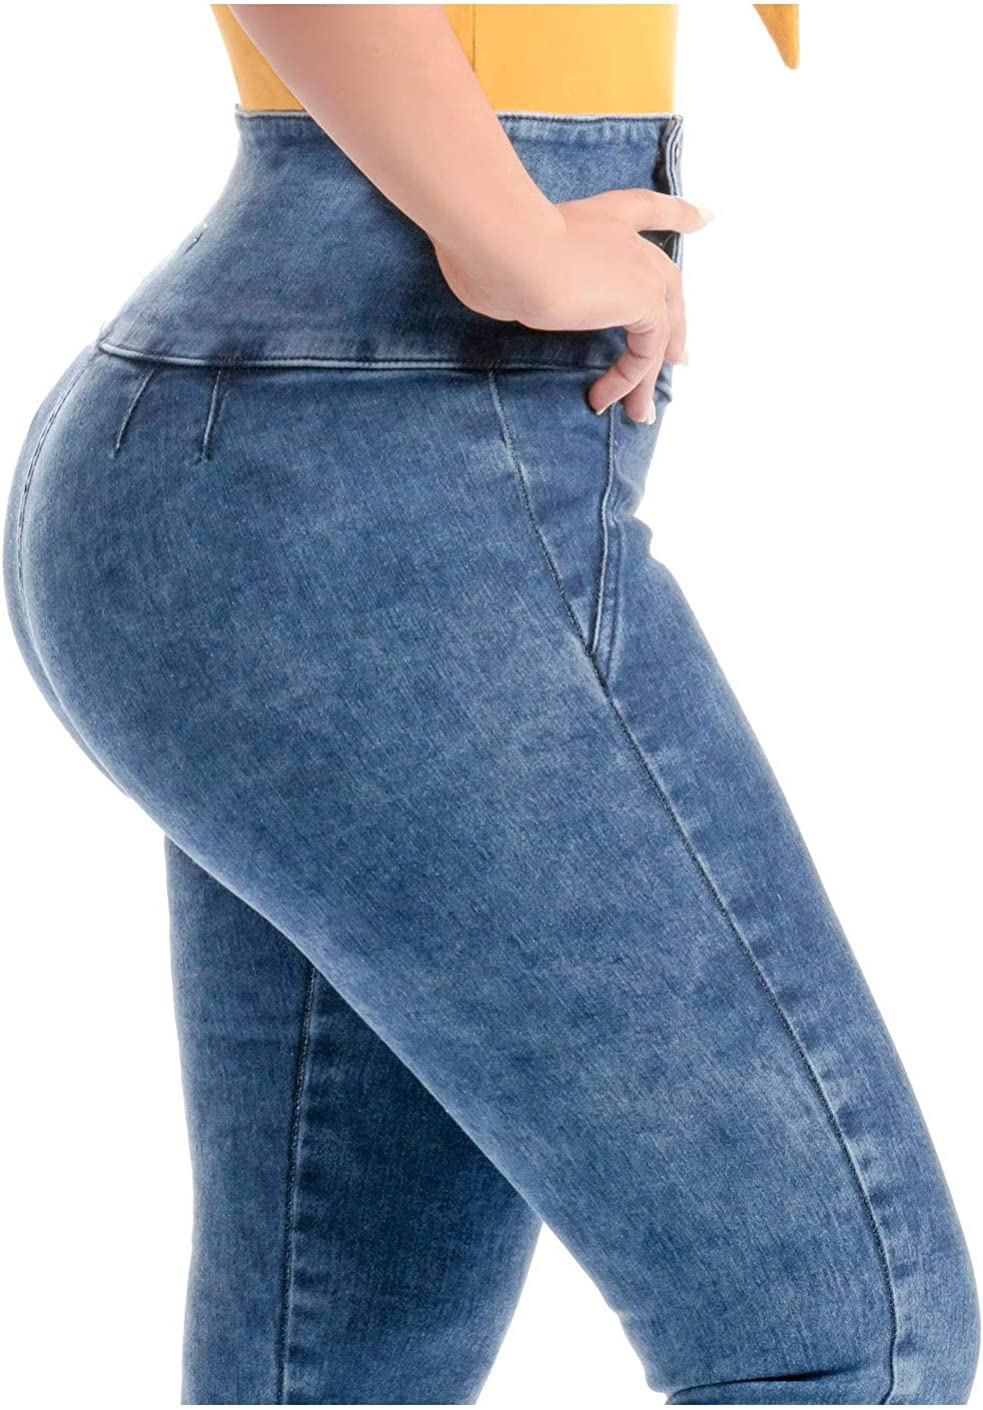 Lowla Colombian Butt Lifting Capri Jeans For Women Pantalones Colombianos Levanta Cola At Amazon Women S Jeans Store